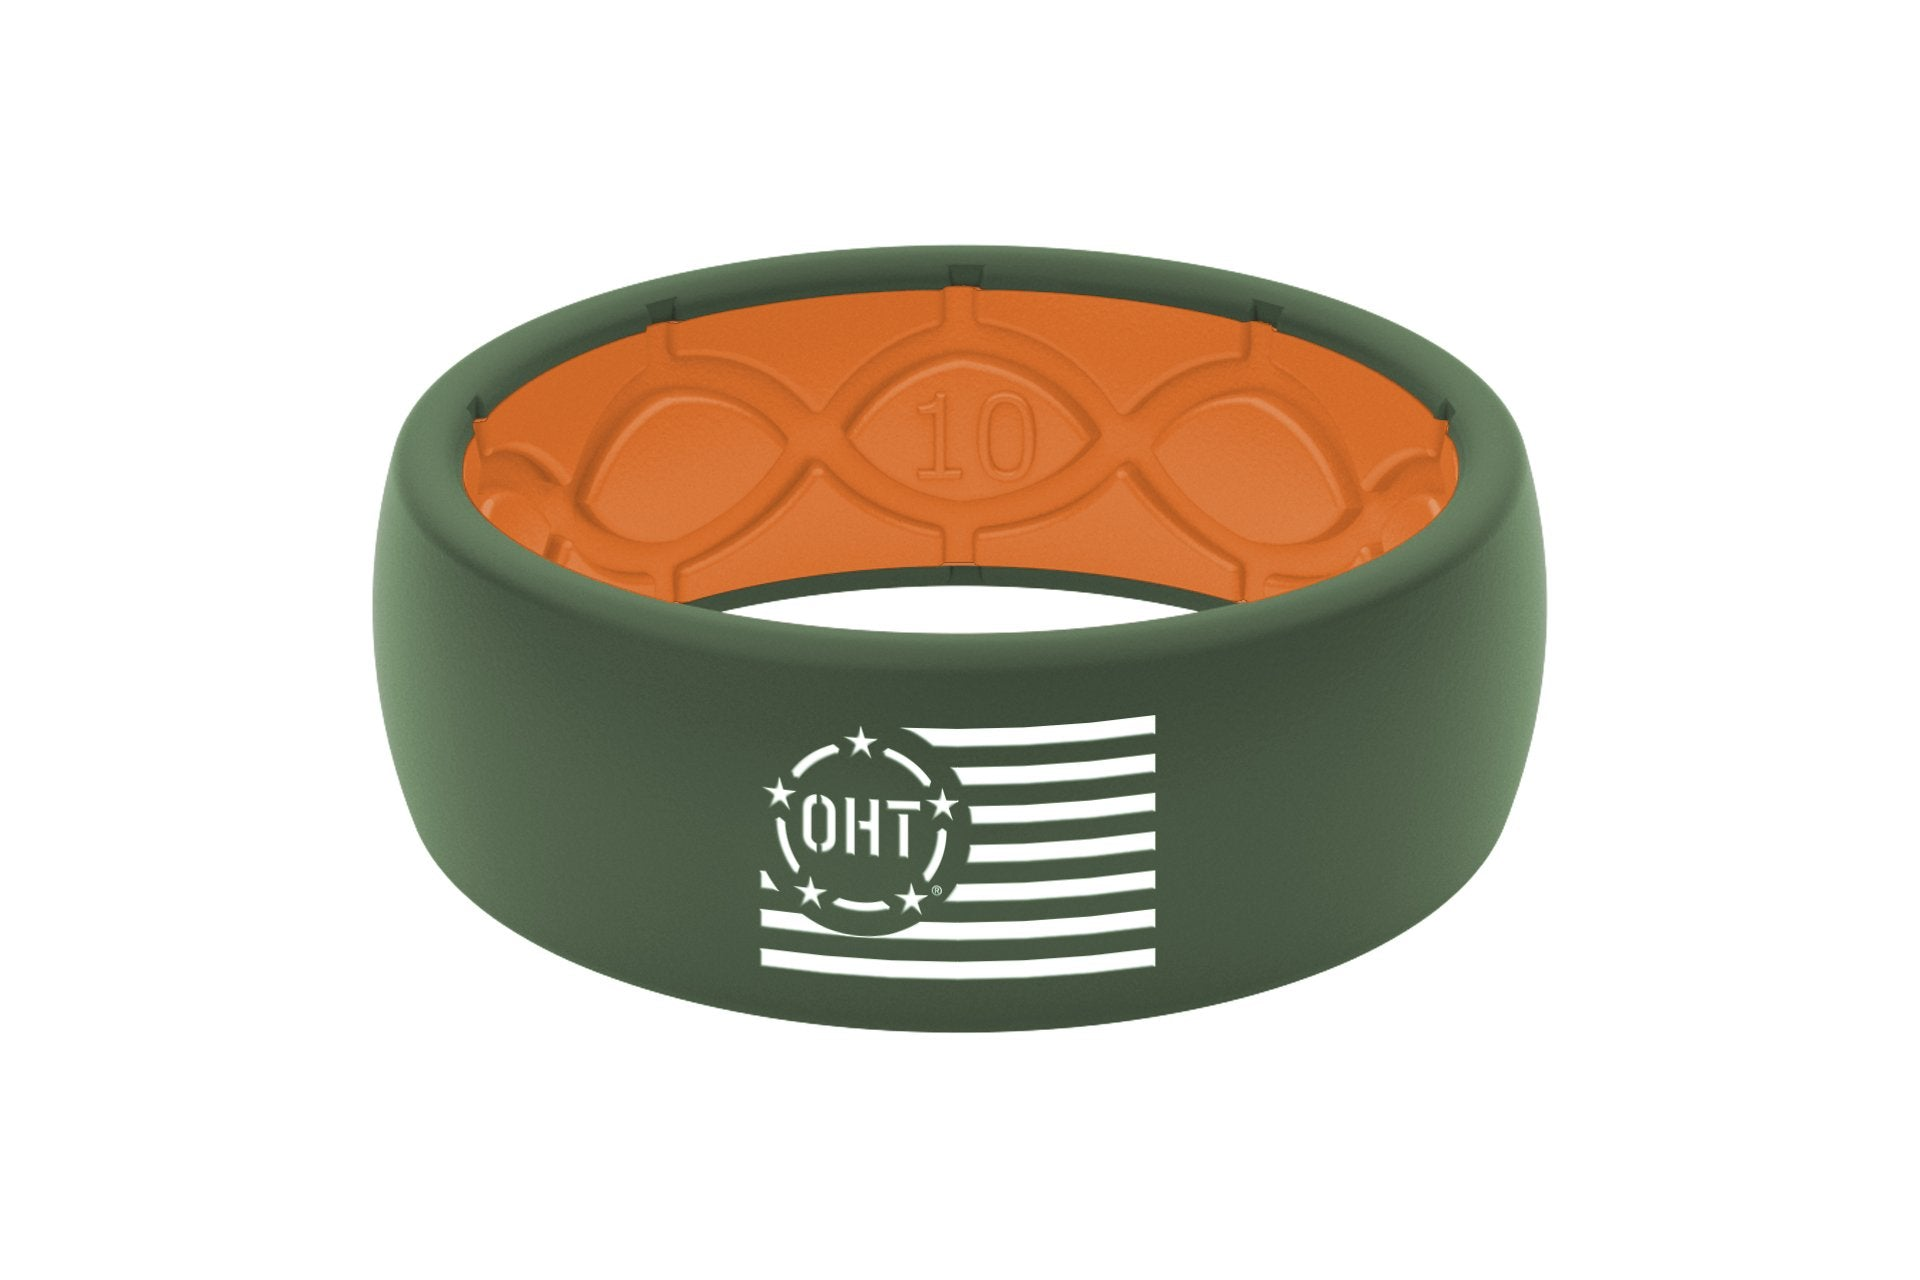 574279673f00f OHT Silicone Ring - White Flag/Moss Green